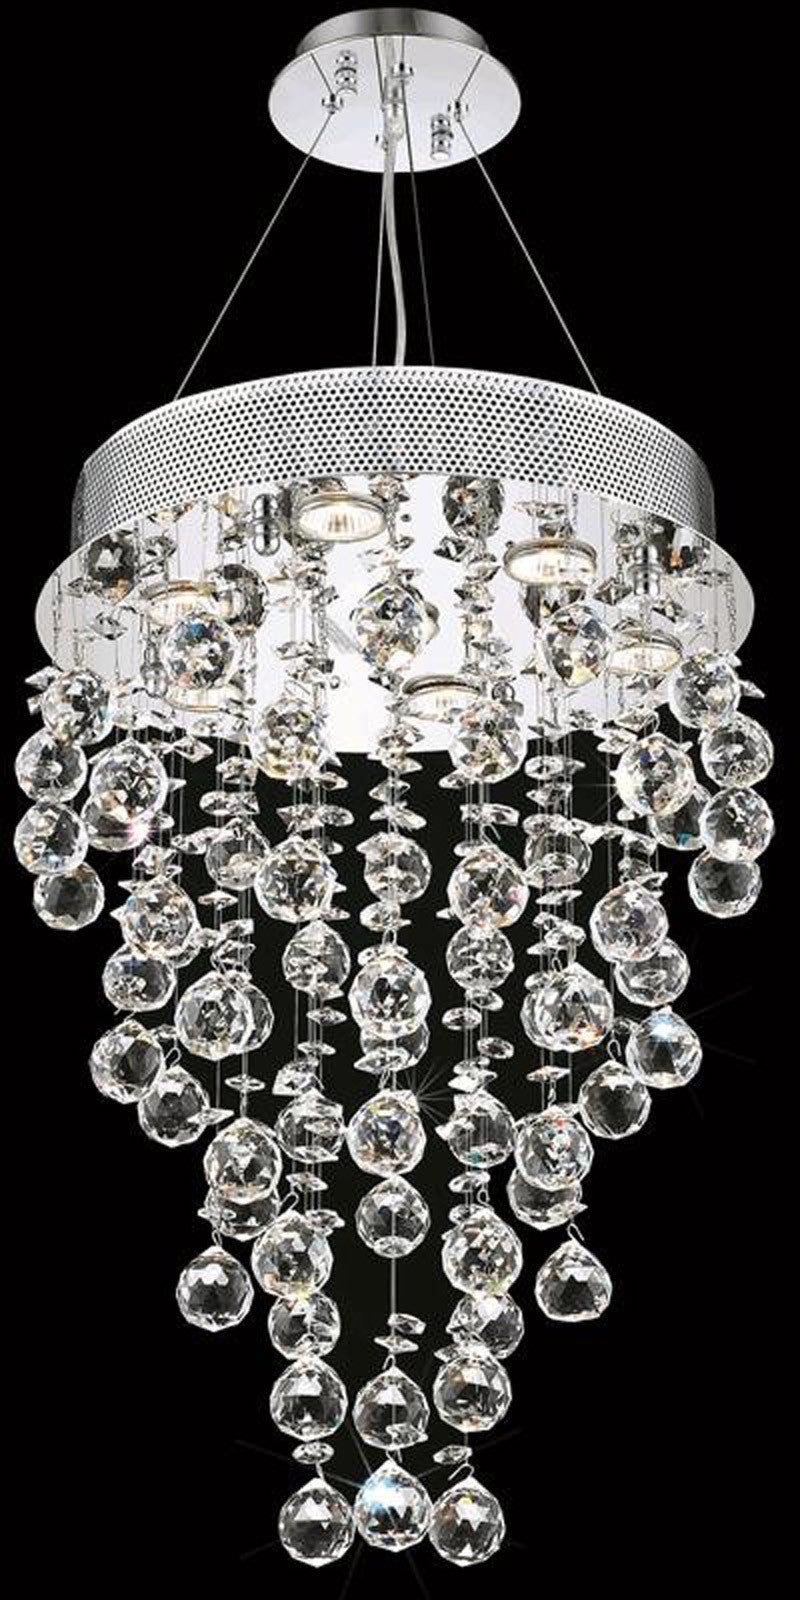 C121-2006D16C(LED)/EC By Elegant Lighting - Galaxy Collection Chrome Finish 7 Lights Dining Room